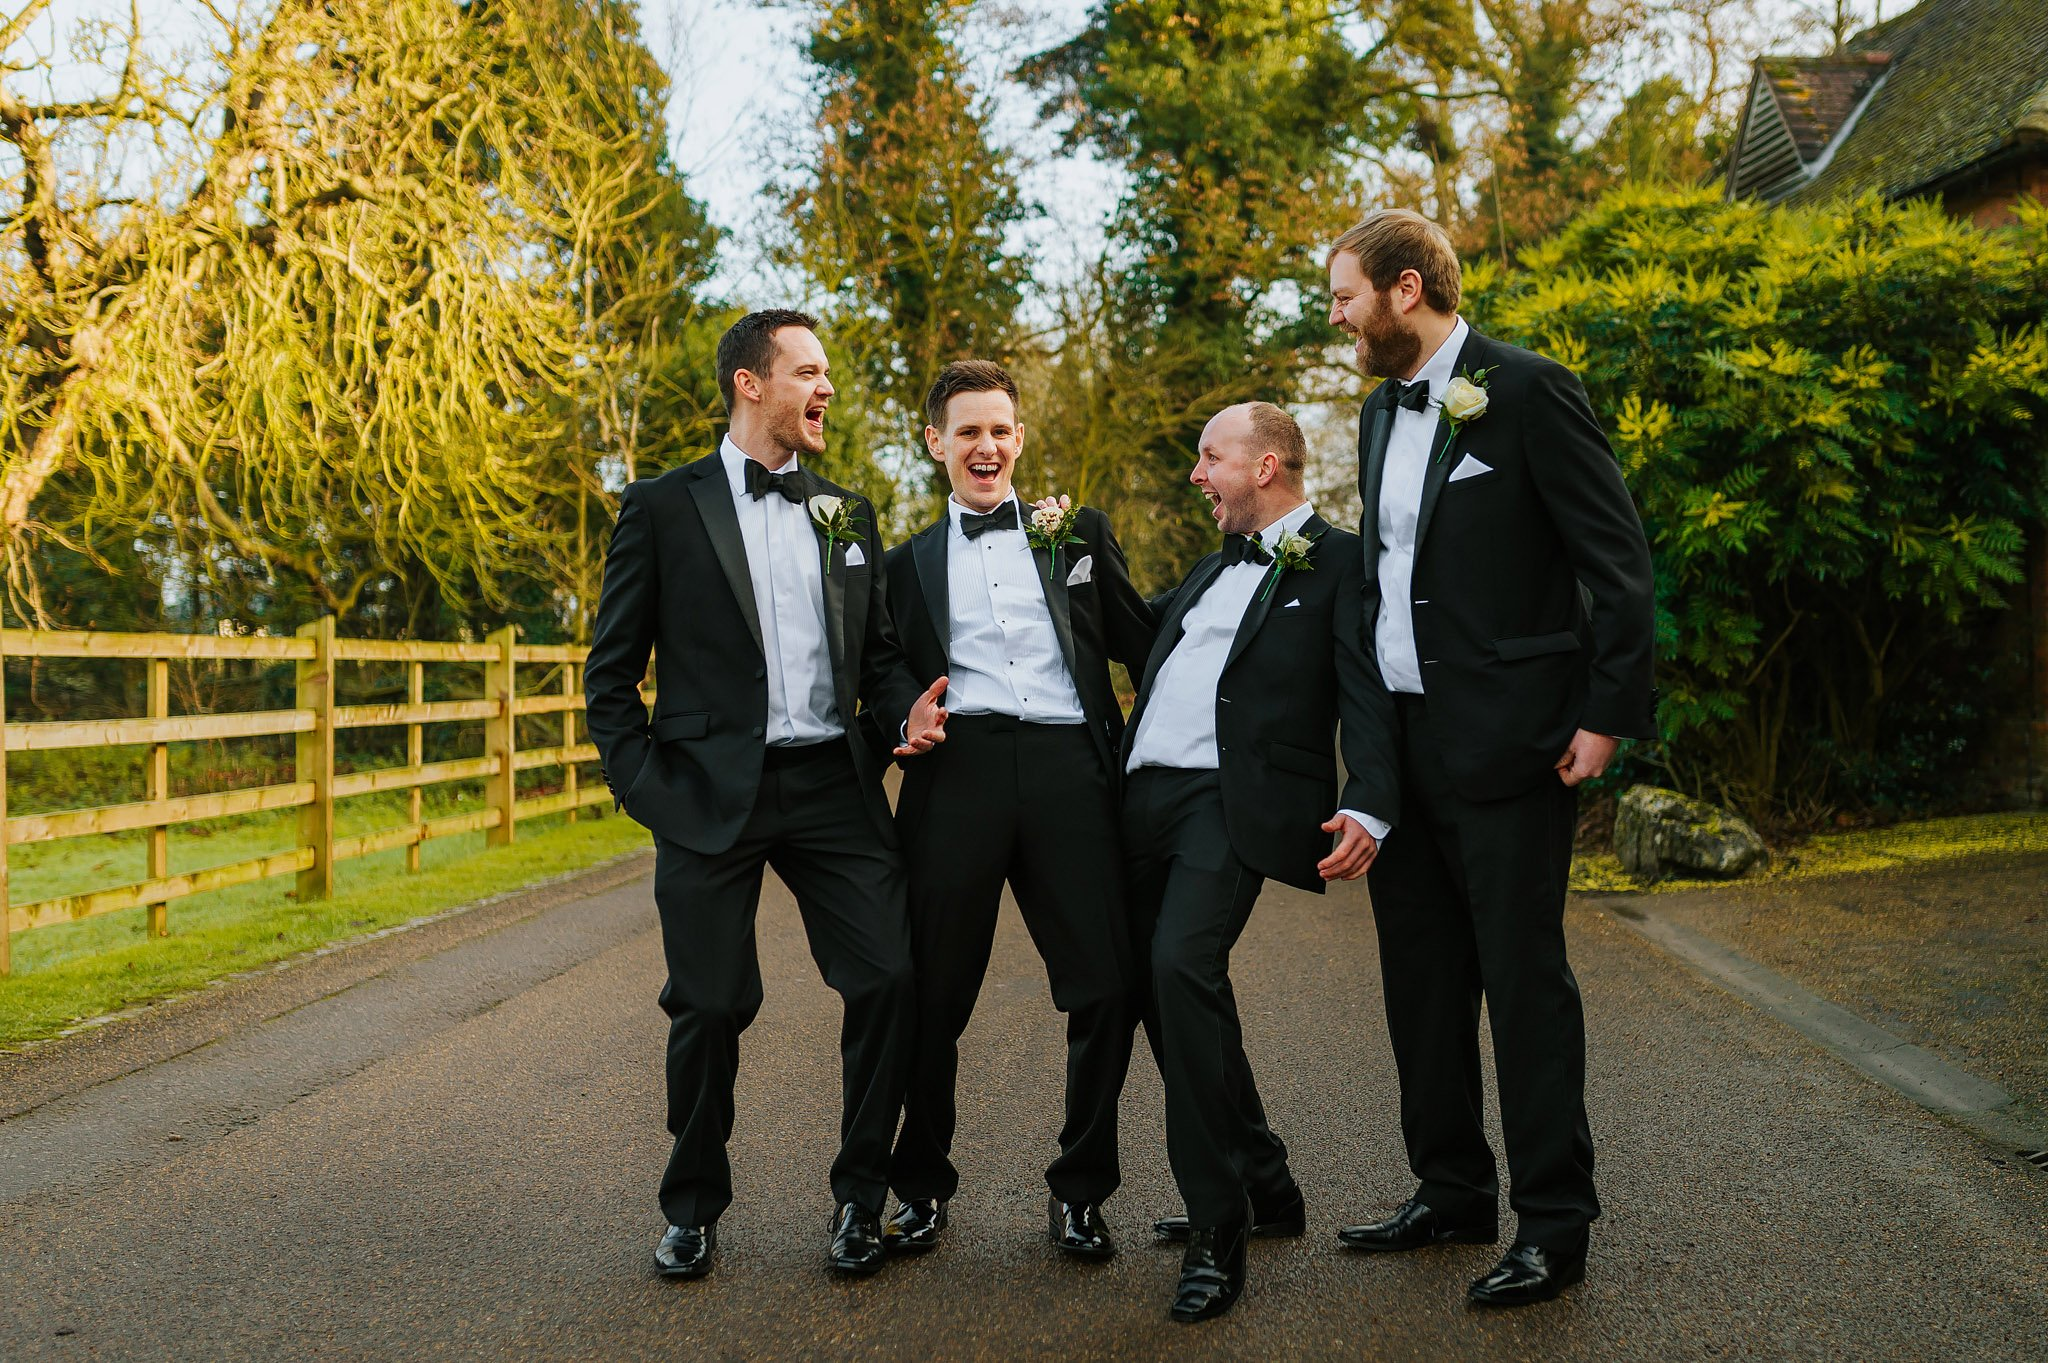 Coombe Abbey wedding in Coventry, Warwickshire - Sam + Matt 14